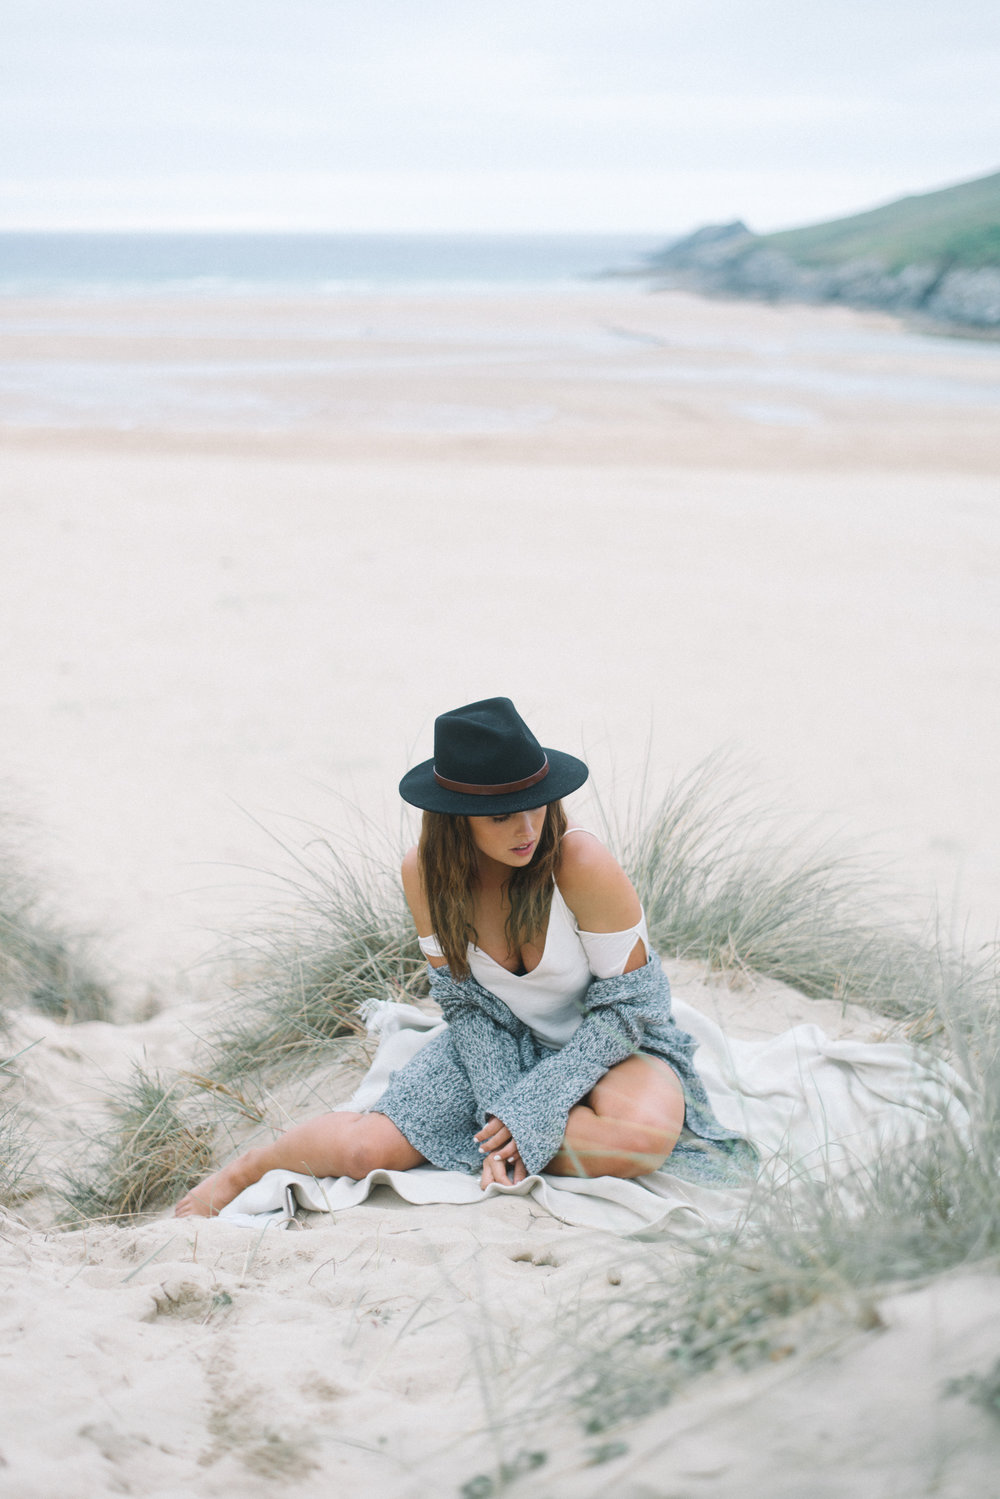 Social Media content by Olivia Bossert Photography, a photographer in Cornwall, UK